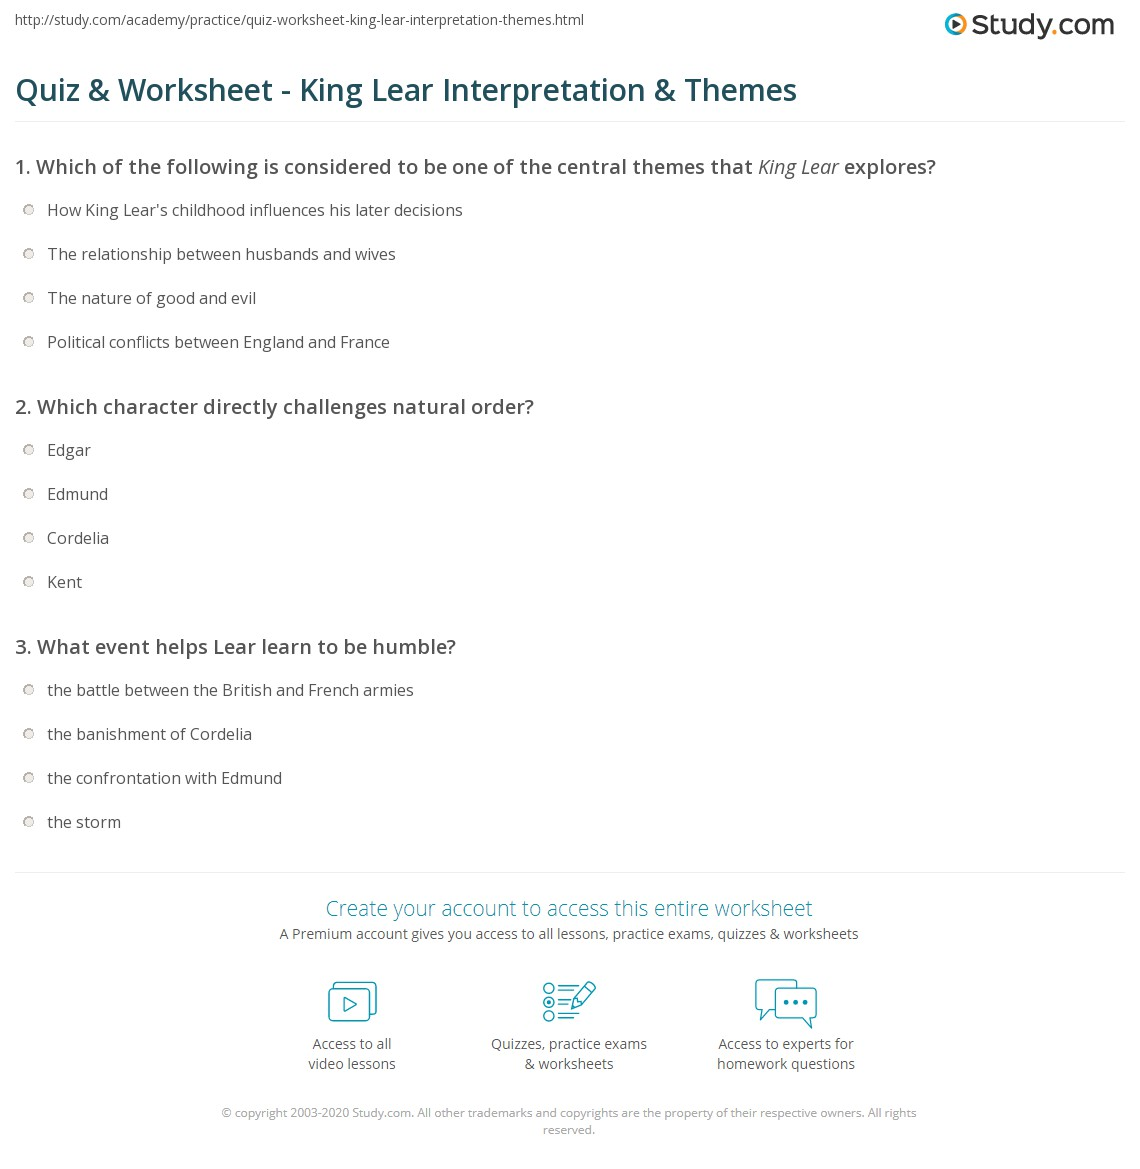 king lear essay possible king lear essay questions  quiz worksheet king lear interpretation themes com print king lear themes analysis worksheet